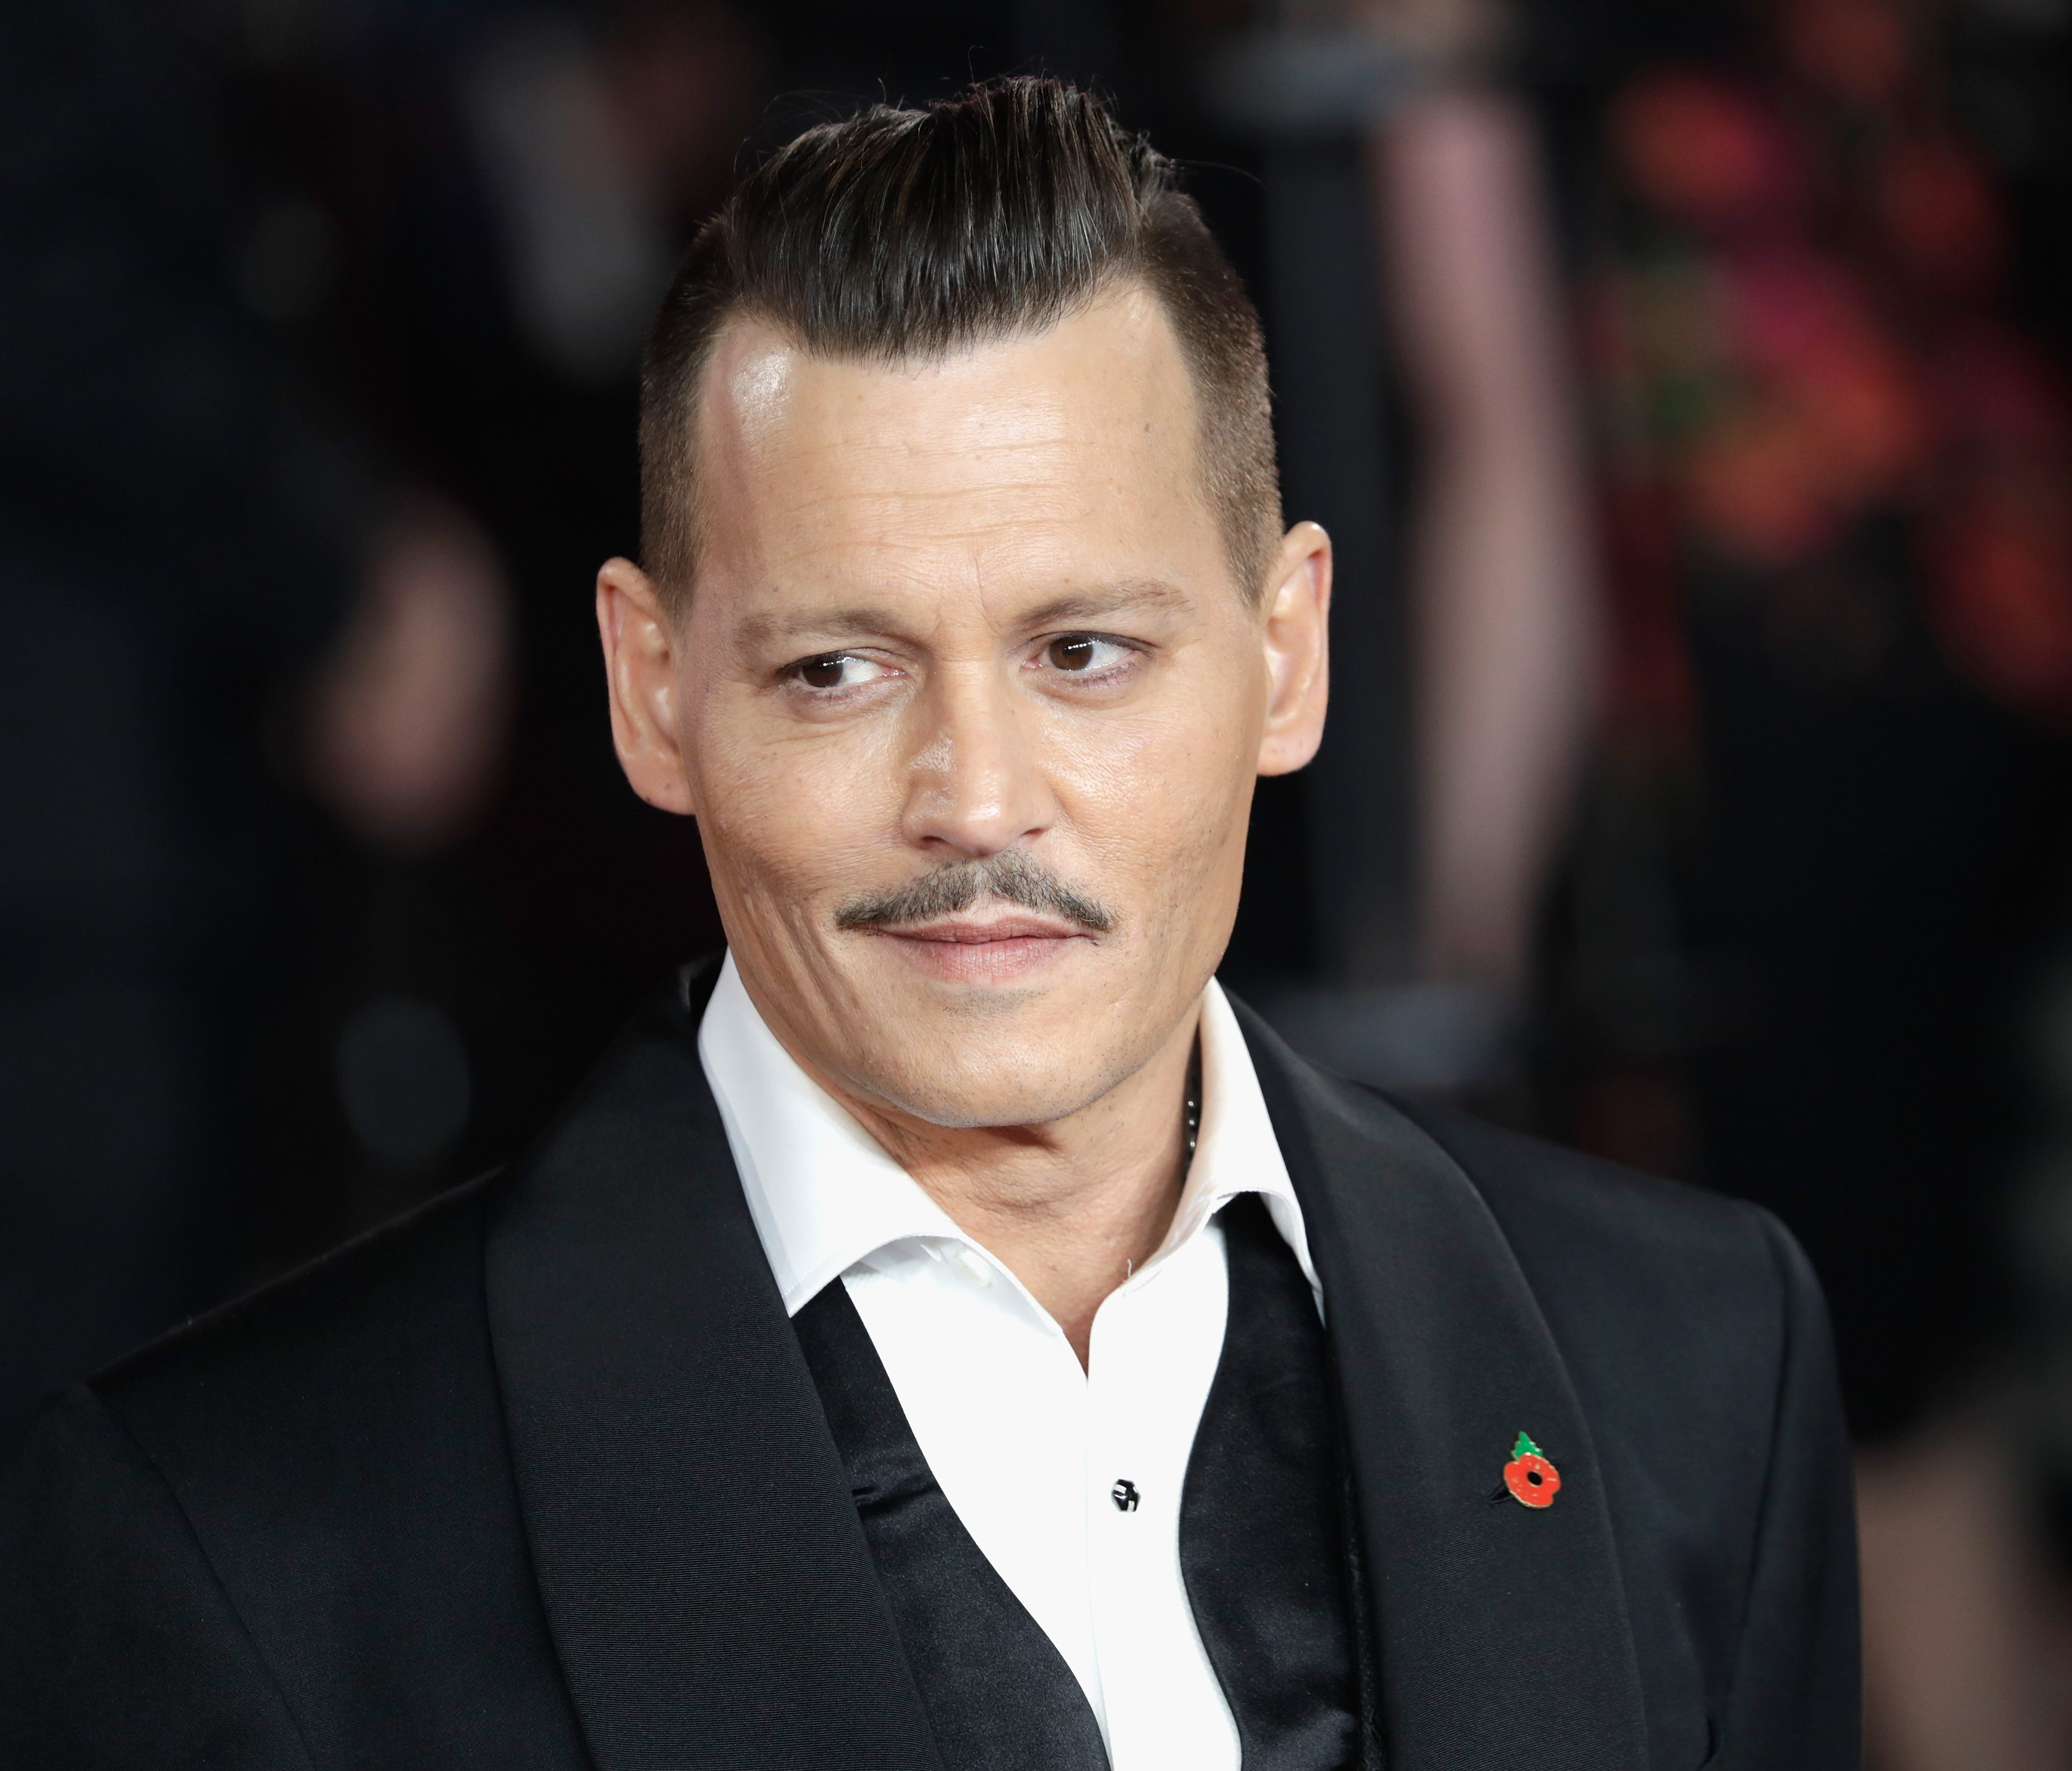 Johnny Depp sported a finely coiffed pompadour at the 'Murder On The Orient Express' premiere on Nov. 2, 2017 in London.